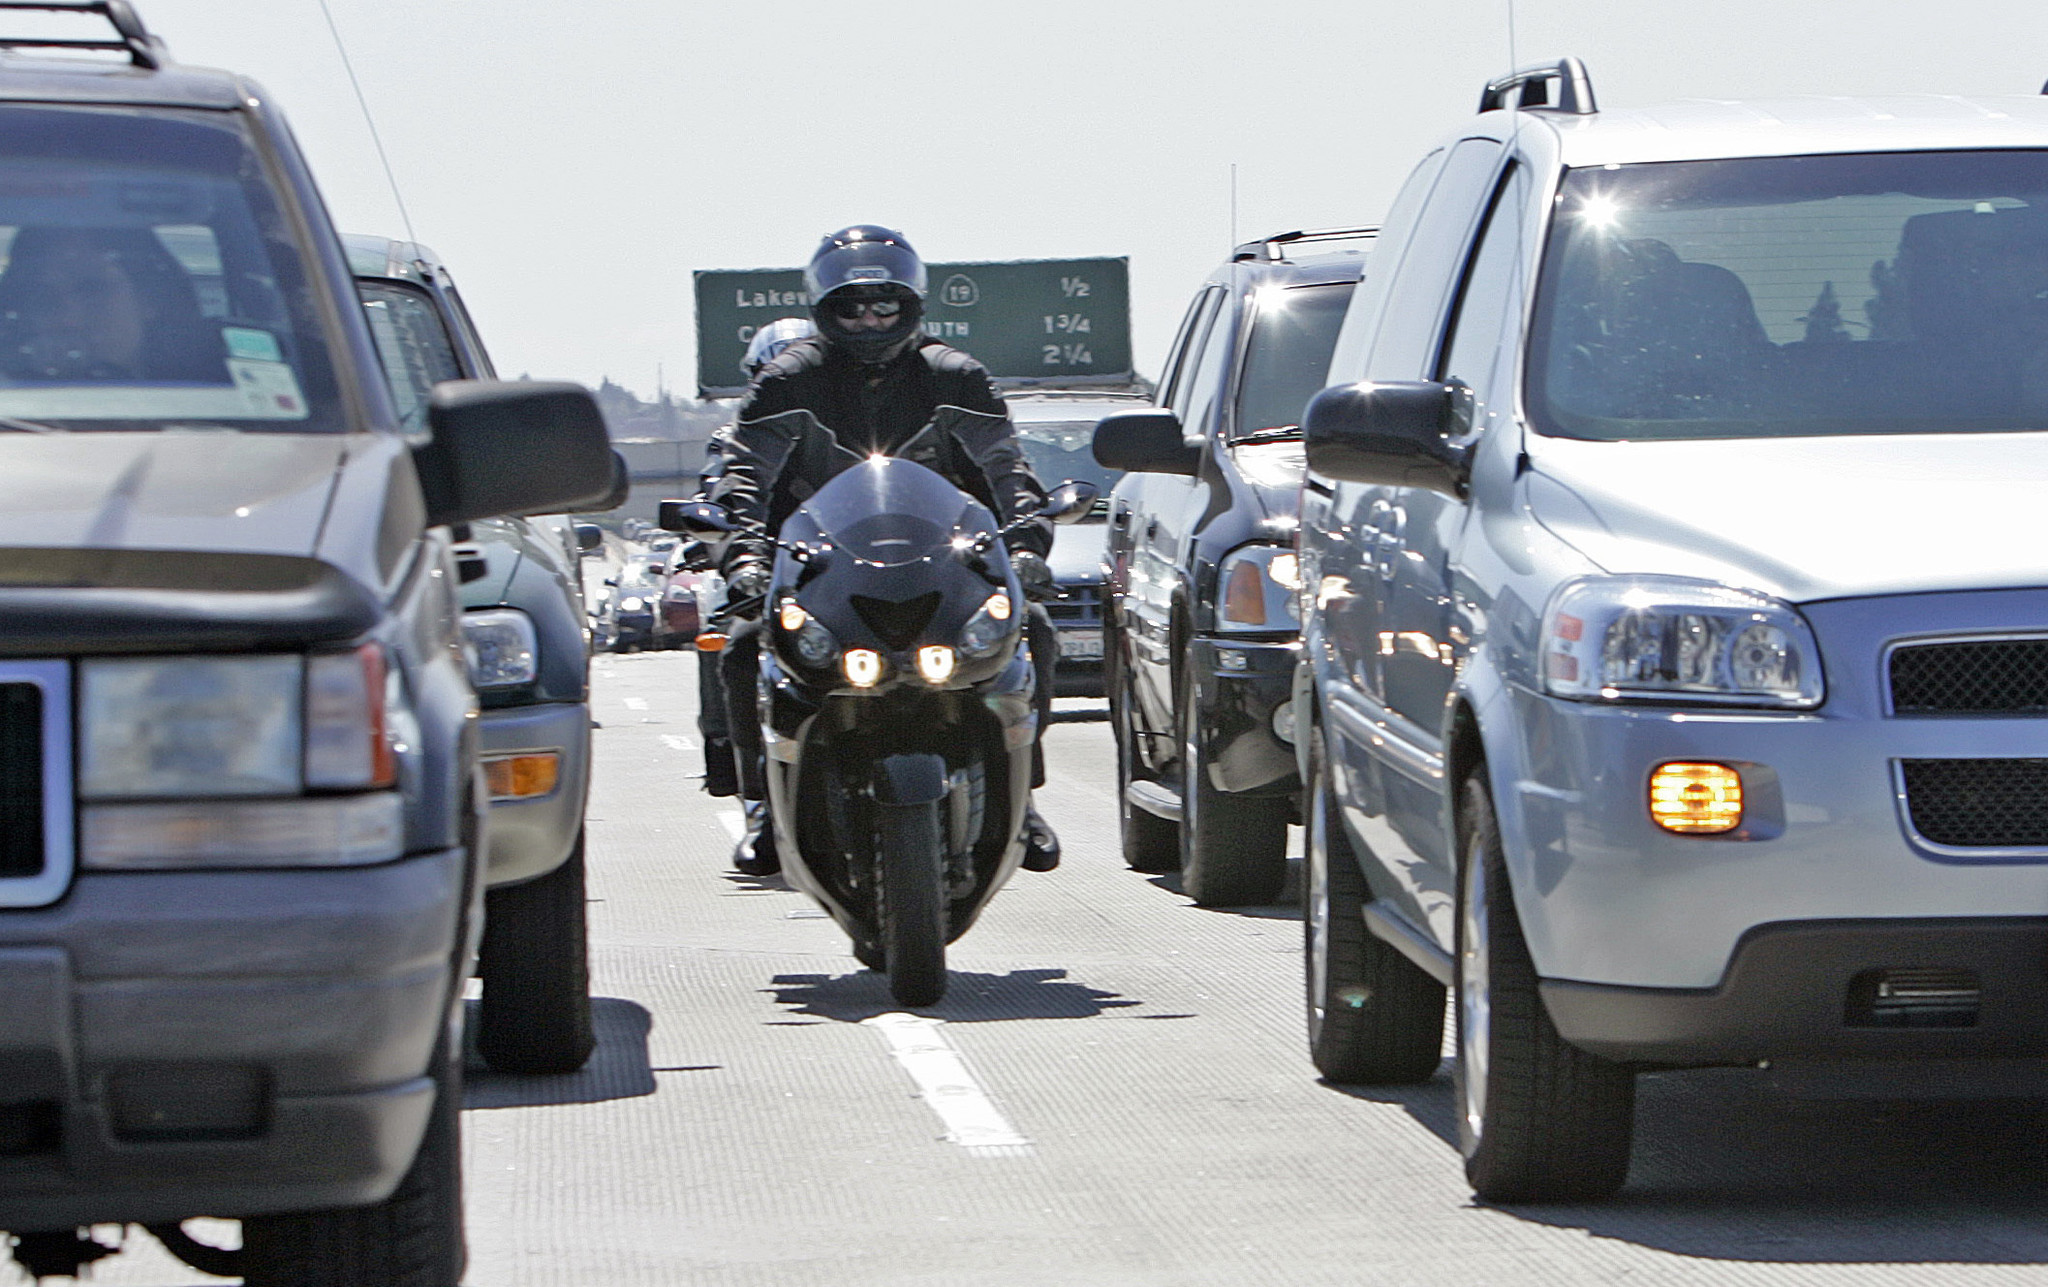 Lane-splitting is safe, but with speed comes danger, study finds